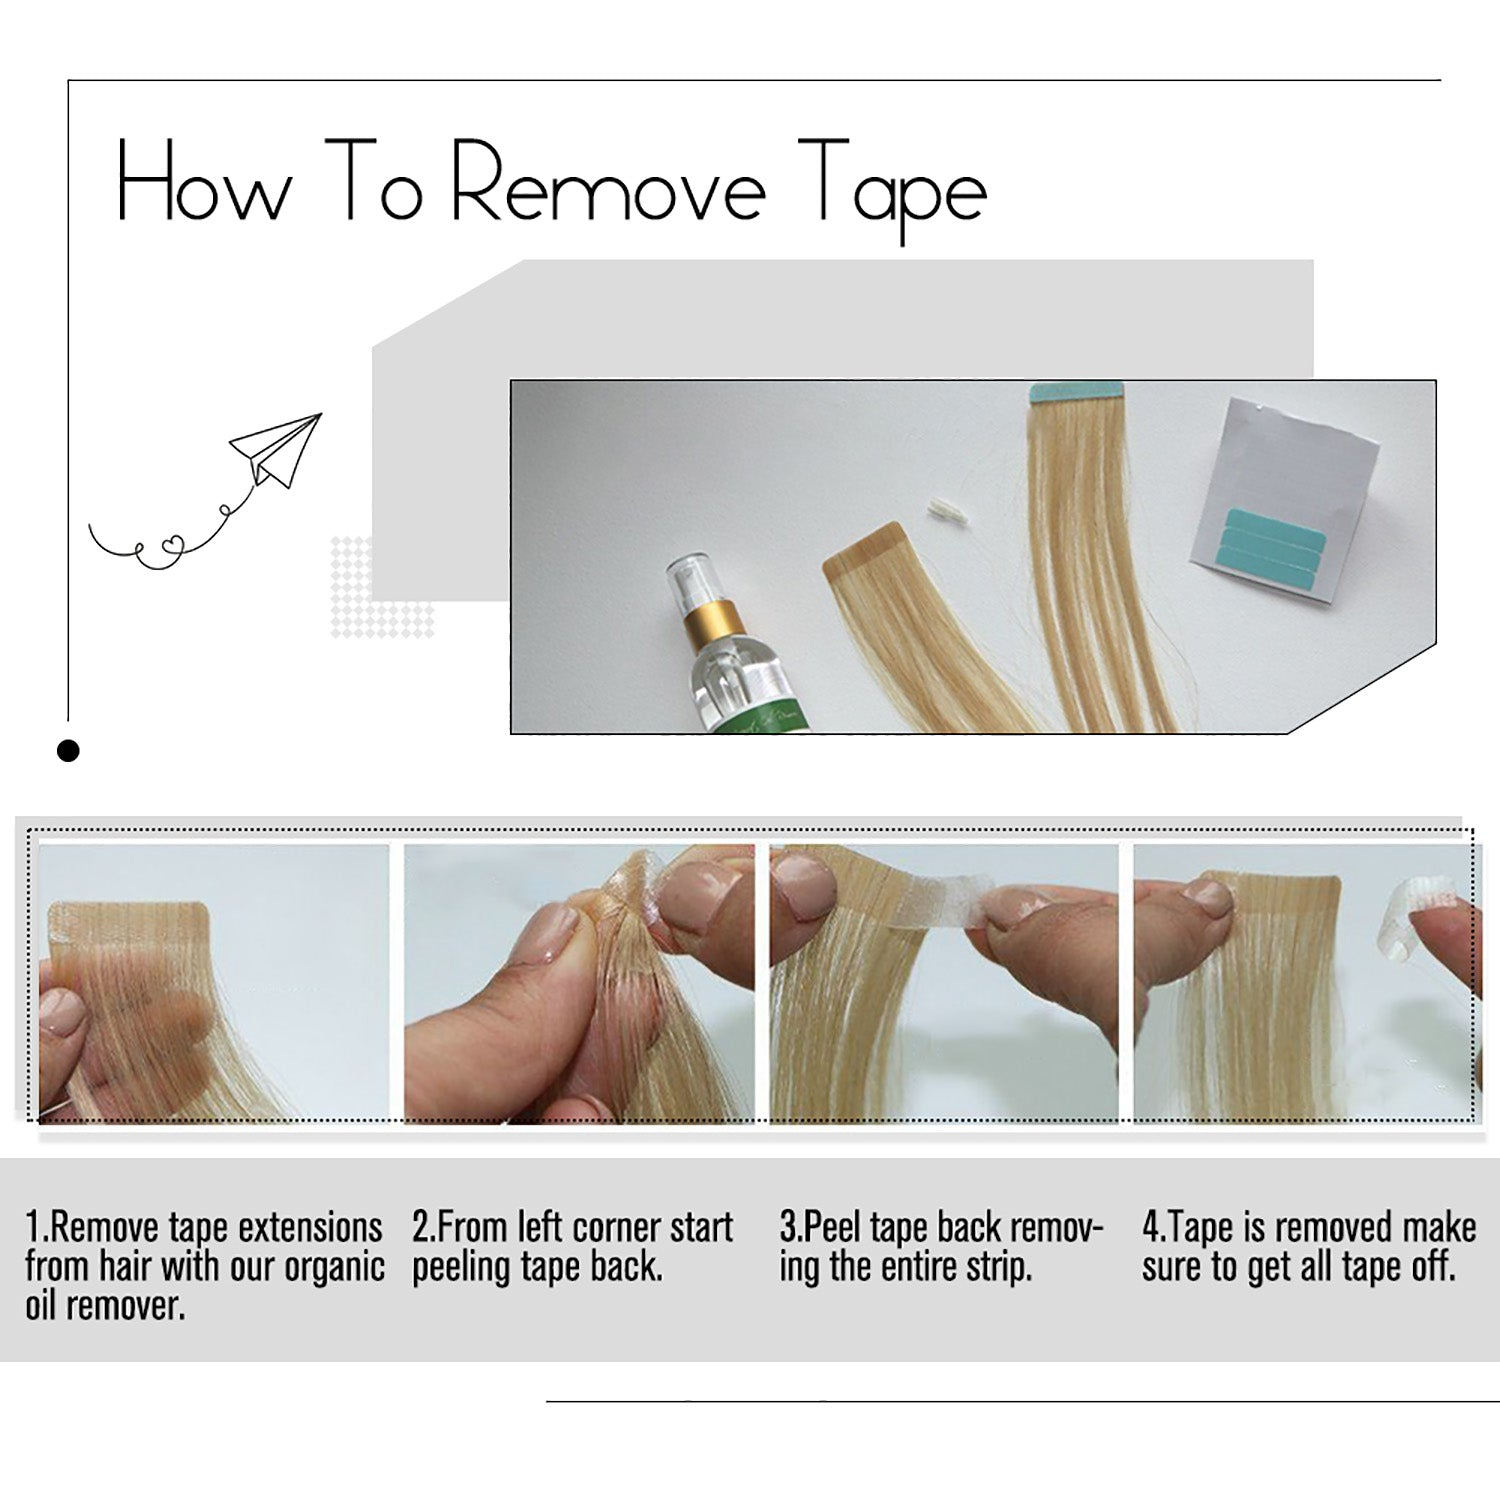 remove tapes